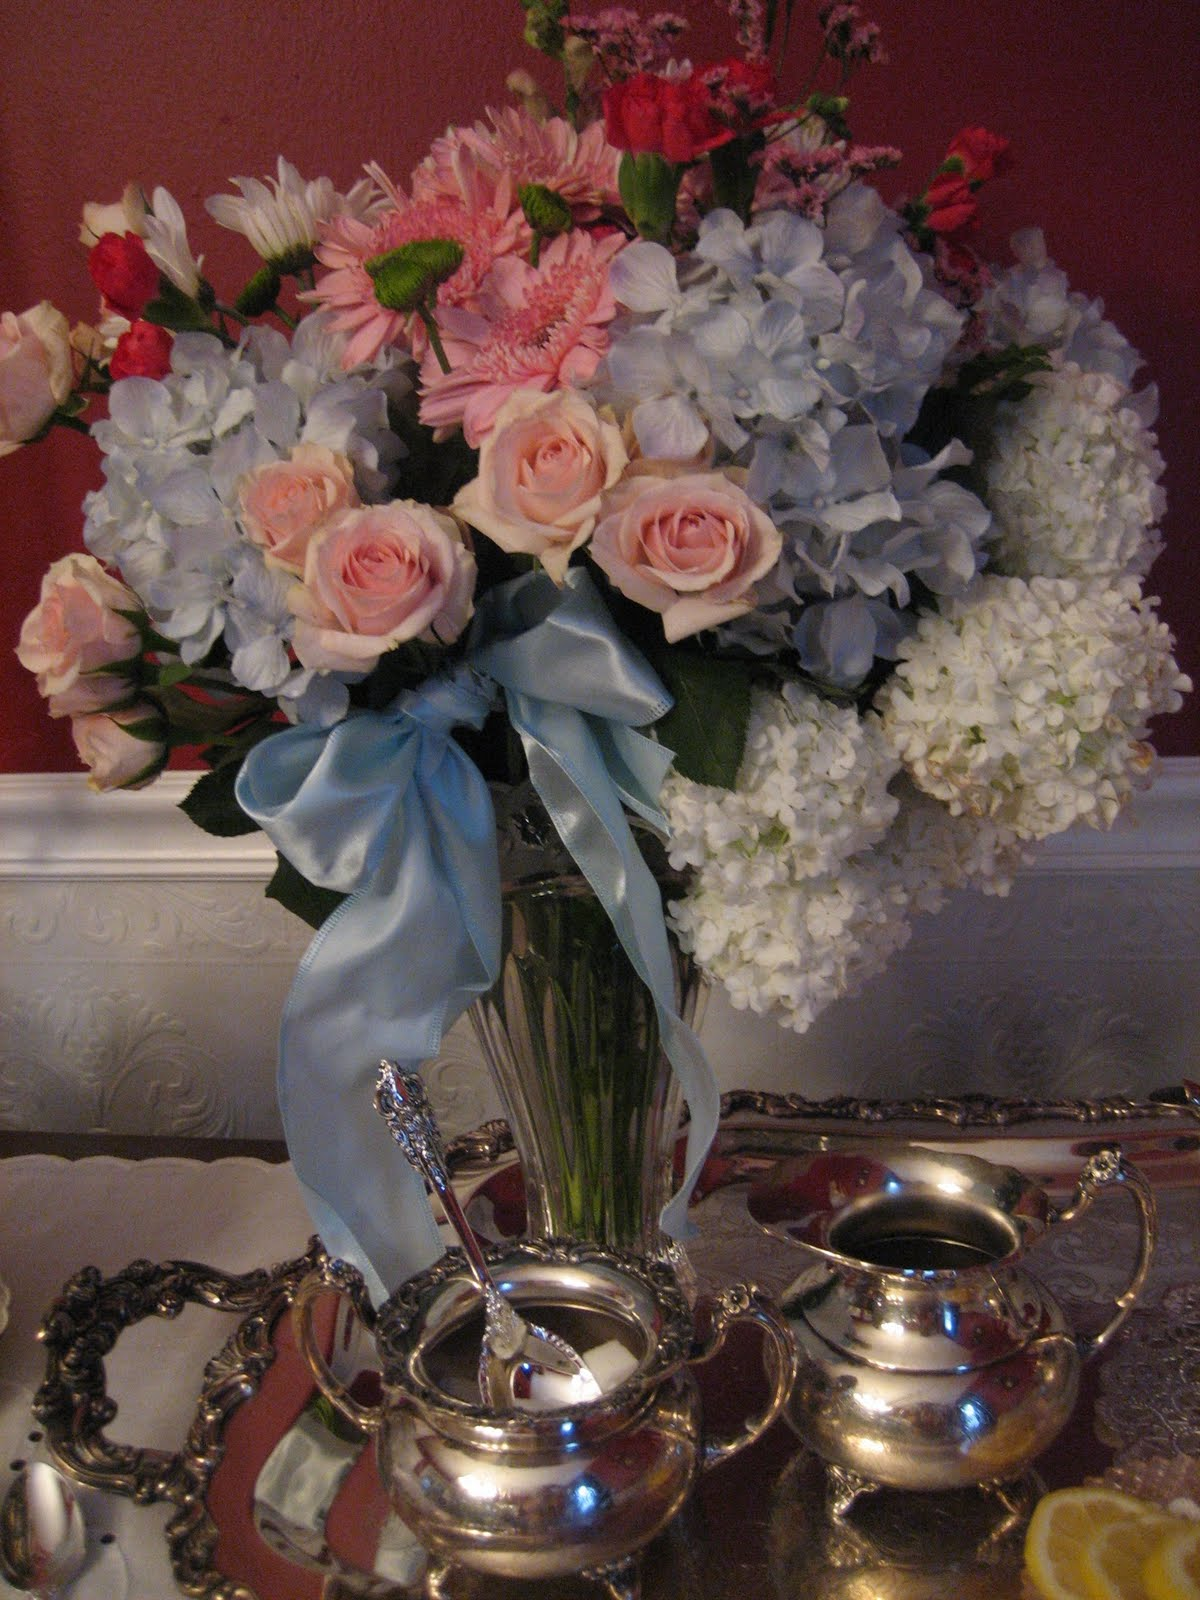 Sam's Club Fresh Flowers http://lebeaupaonvictorien.blogspot.com/2010/05/tea-on-sideboard-queenly-tea.html